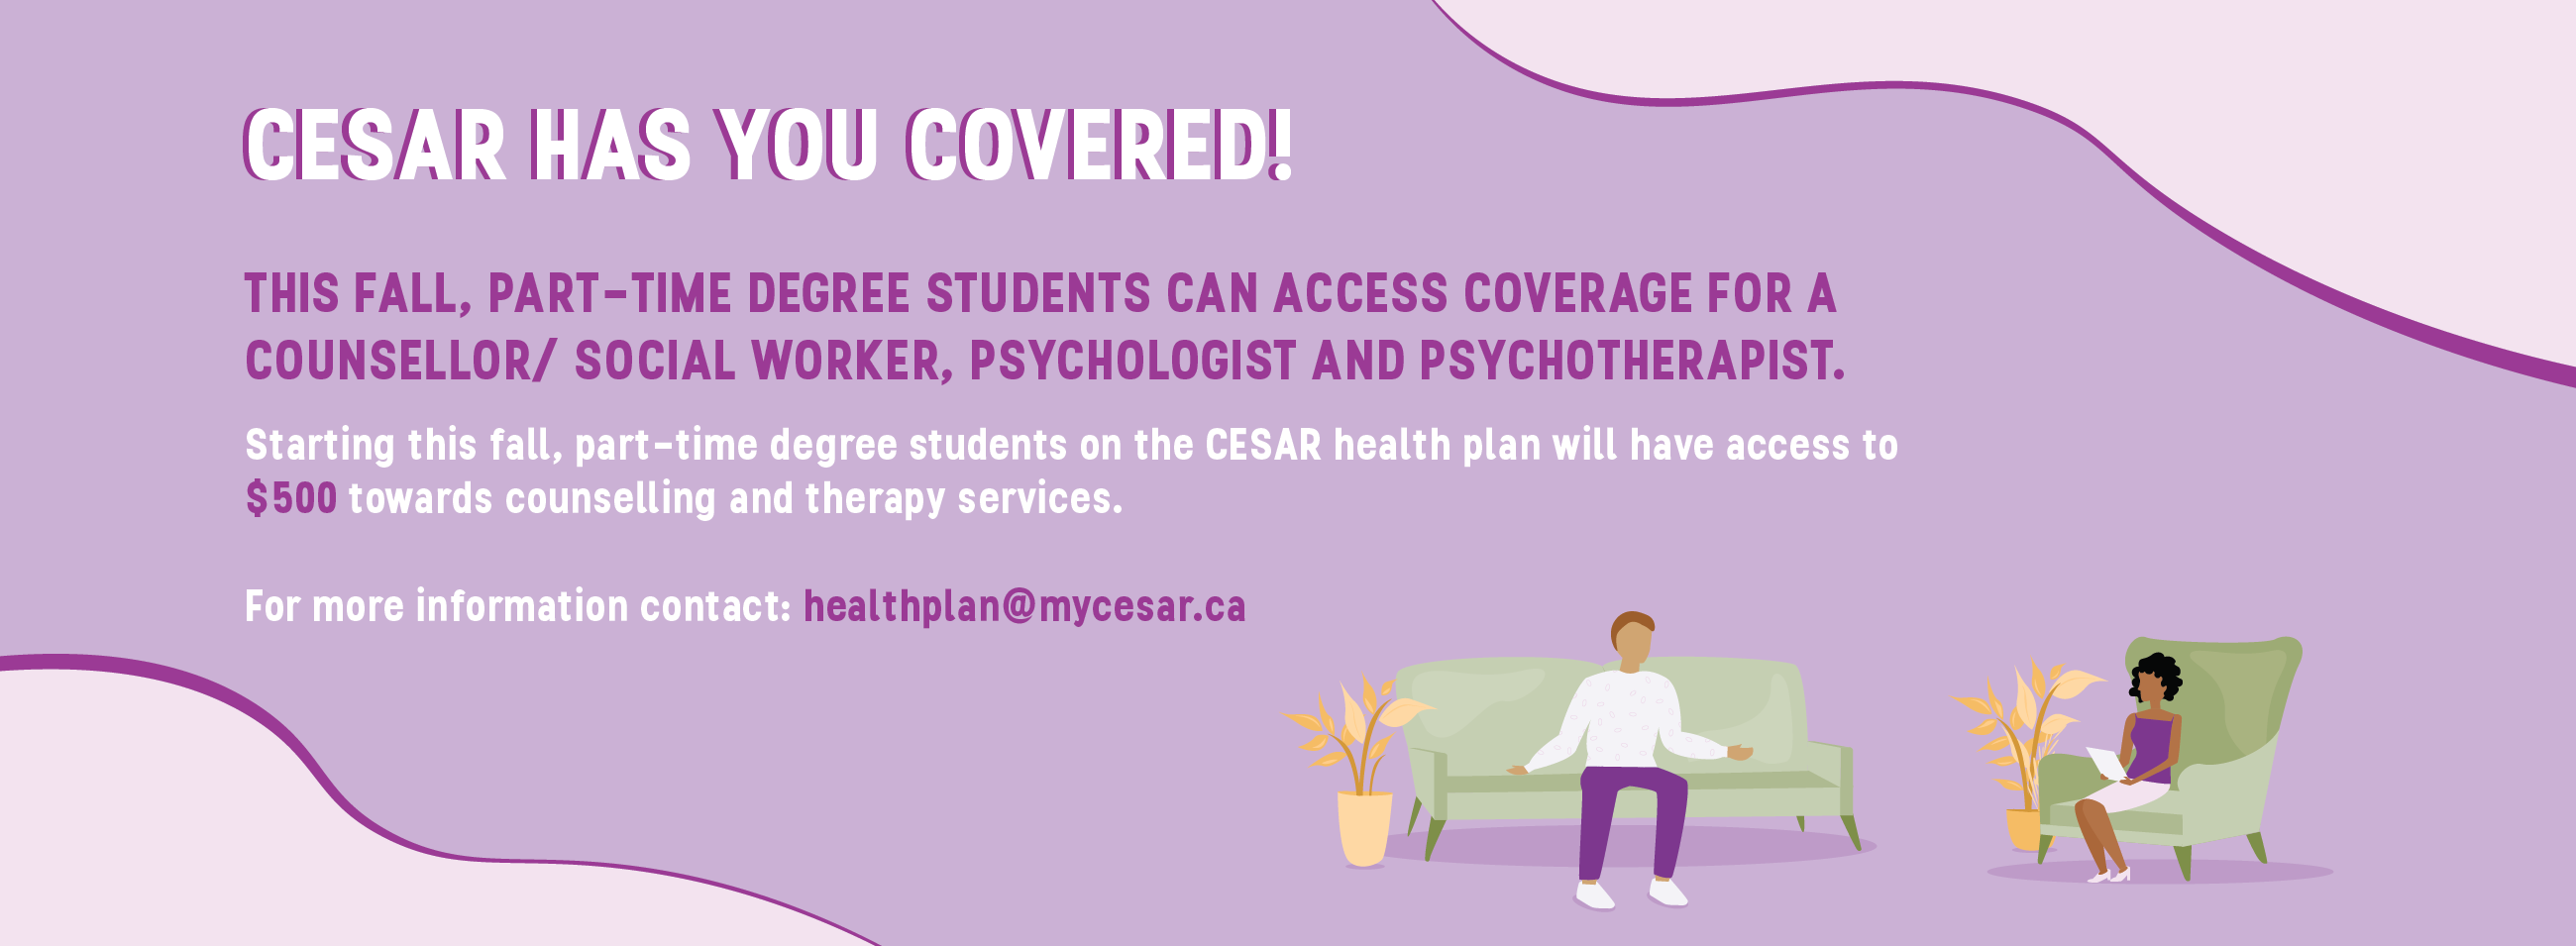 CESAR has you covered! This Fall, part-time degree students can access coverage for a counsellor/social worker, psychologist and psychotherapist. Starting this fall, part-time students on the CESAR health plan will have access to $500 towards counselling and therapy services. For more information contact: healthplan@mycesax.ca